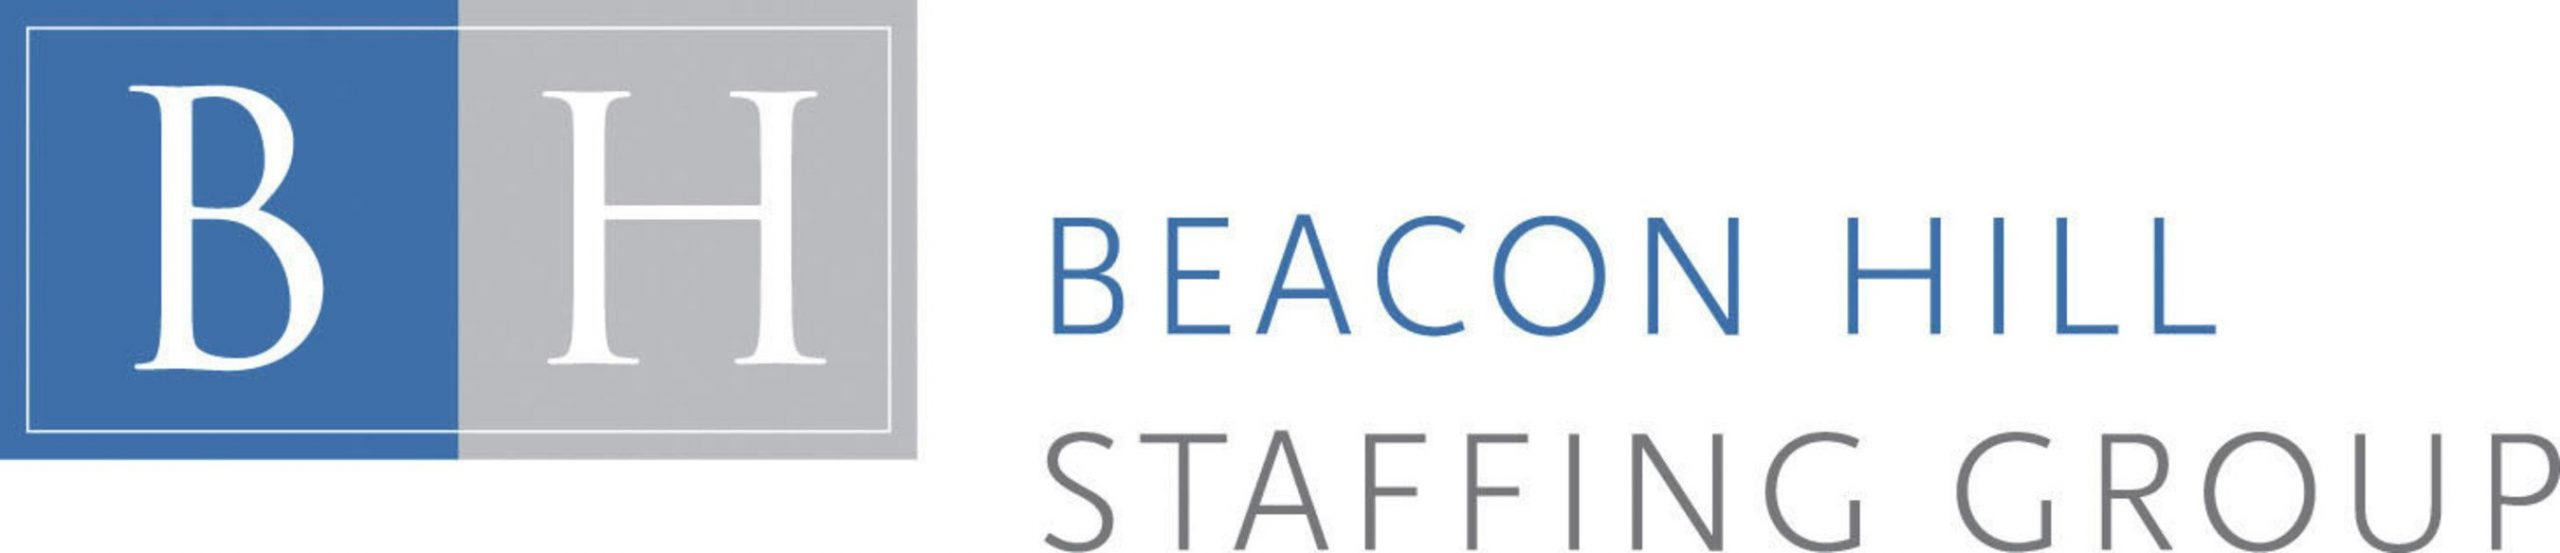 Beacon Hill Staffing Group (PRNewsFoto/Beacon Hill Staffing Group)